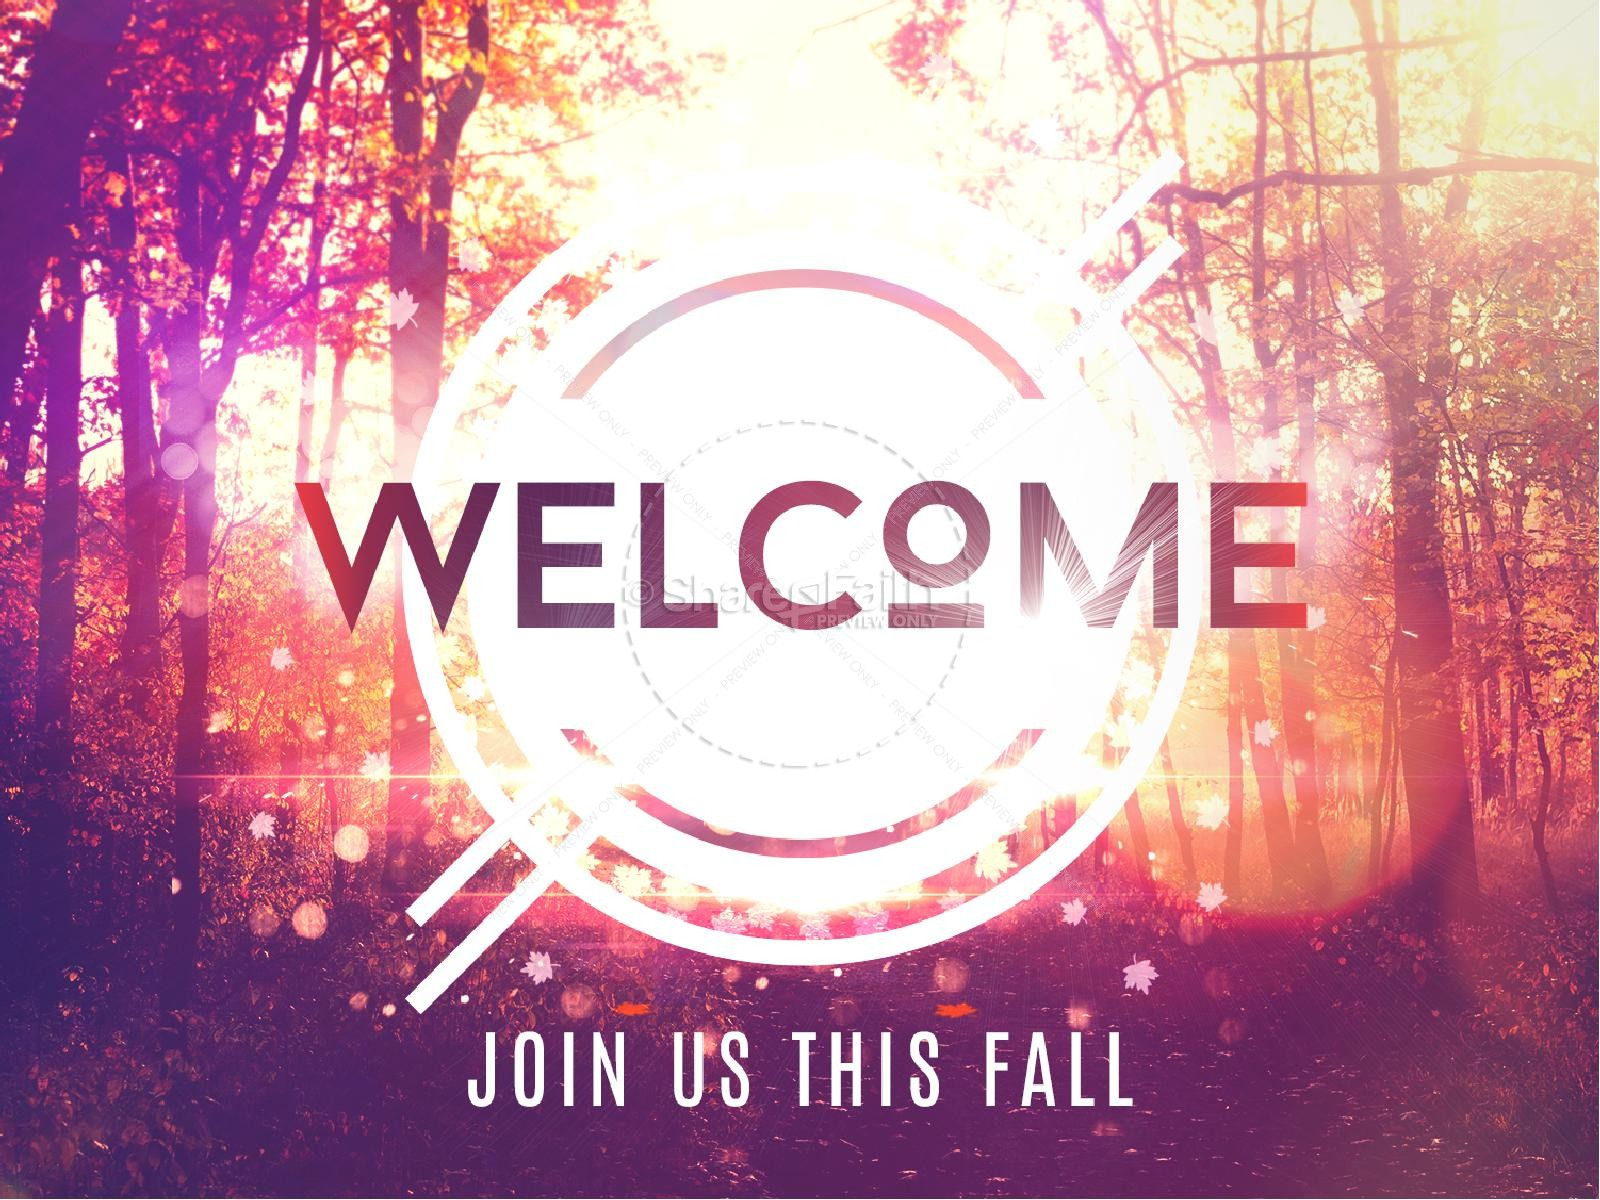 Fall Welcome Graphic Design   slide 1